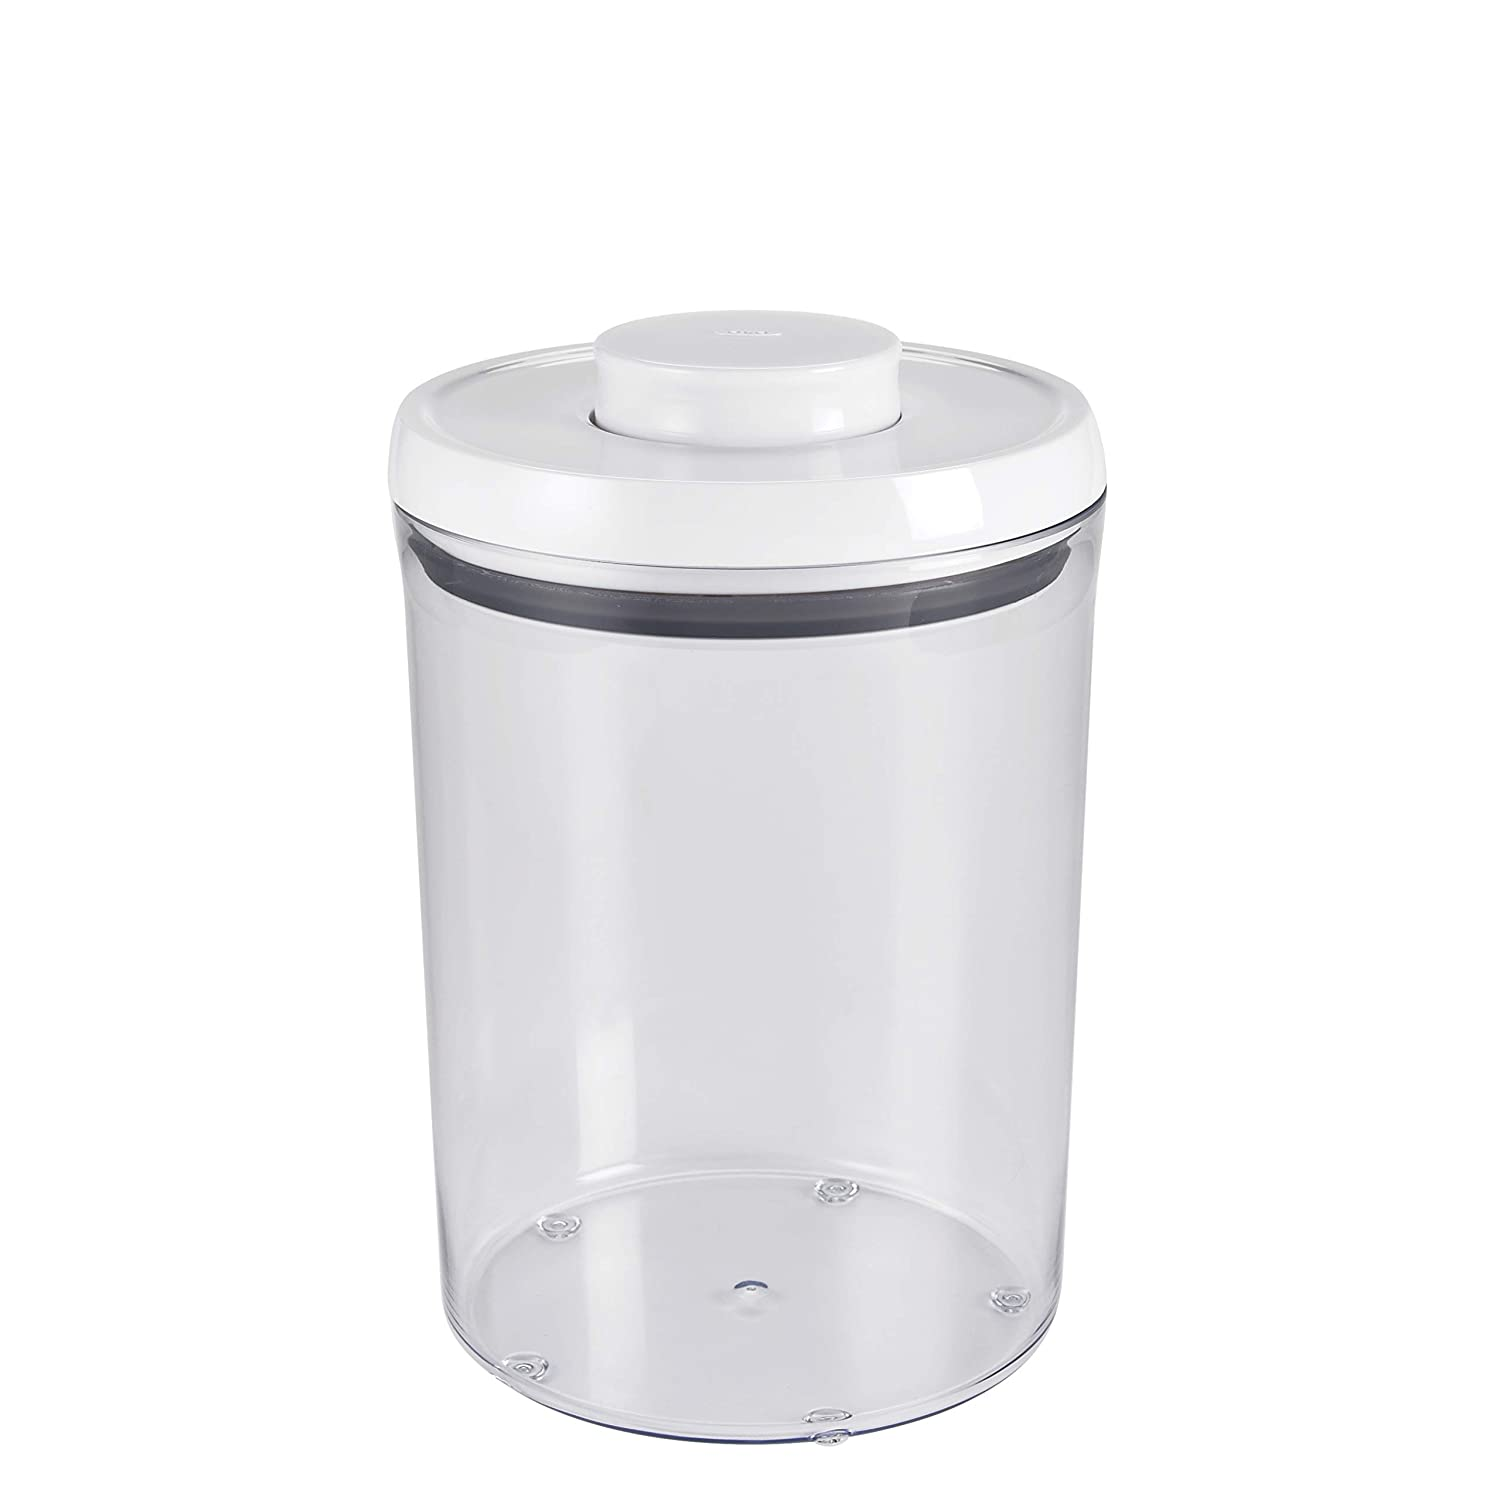 OXO Good Grips Airtight POP Round Canister (3.0 Qt)